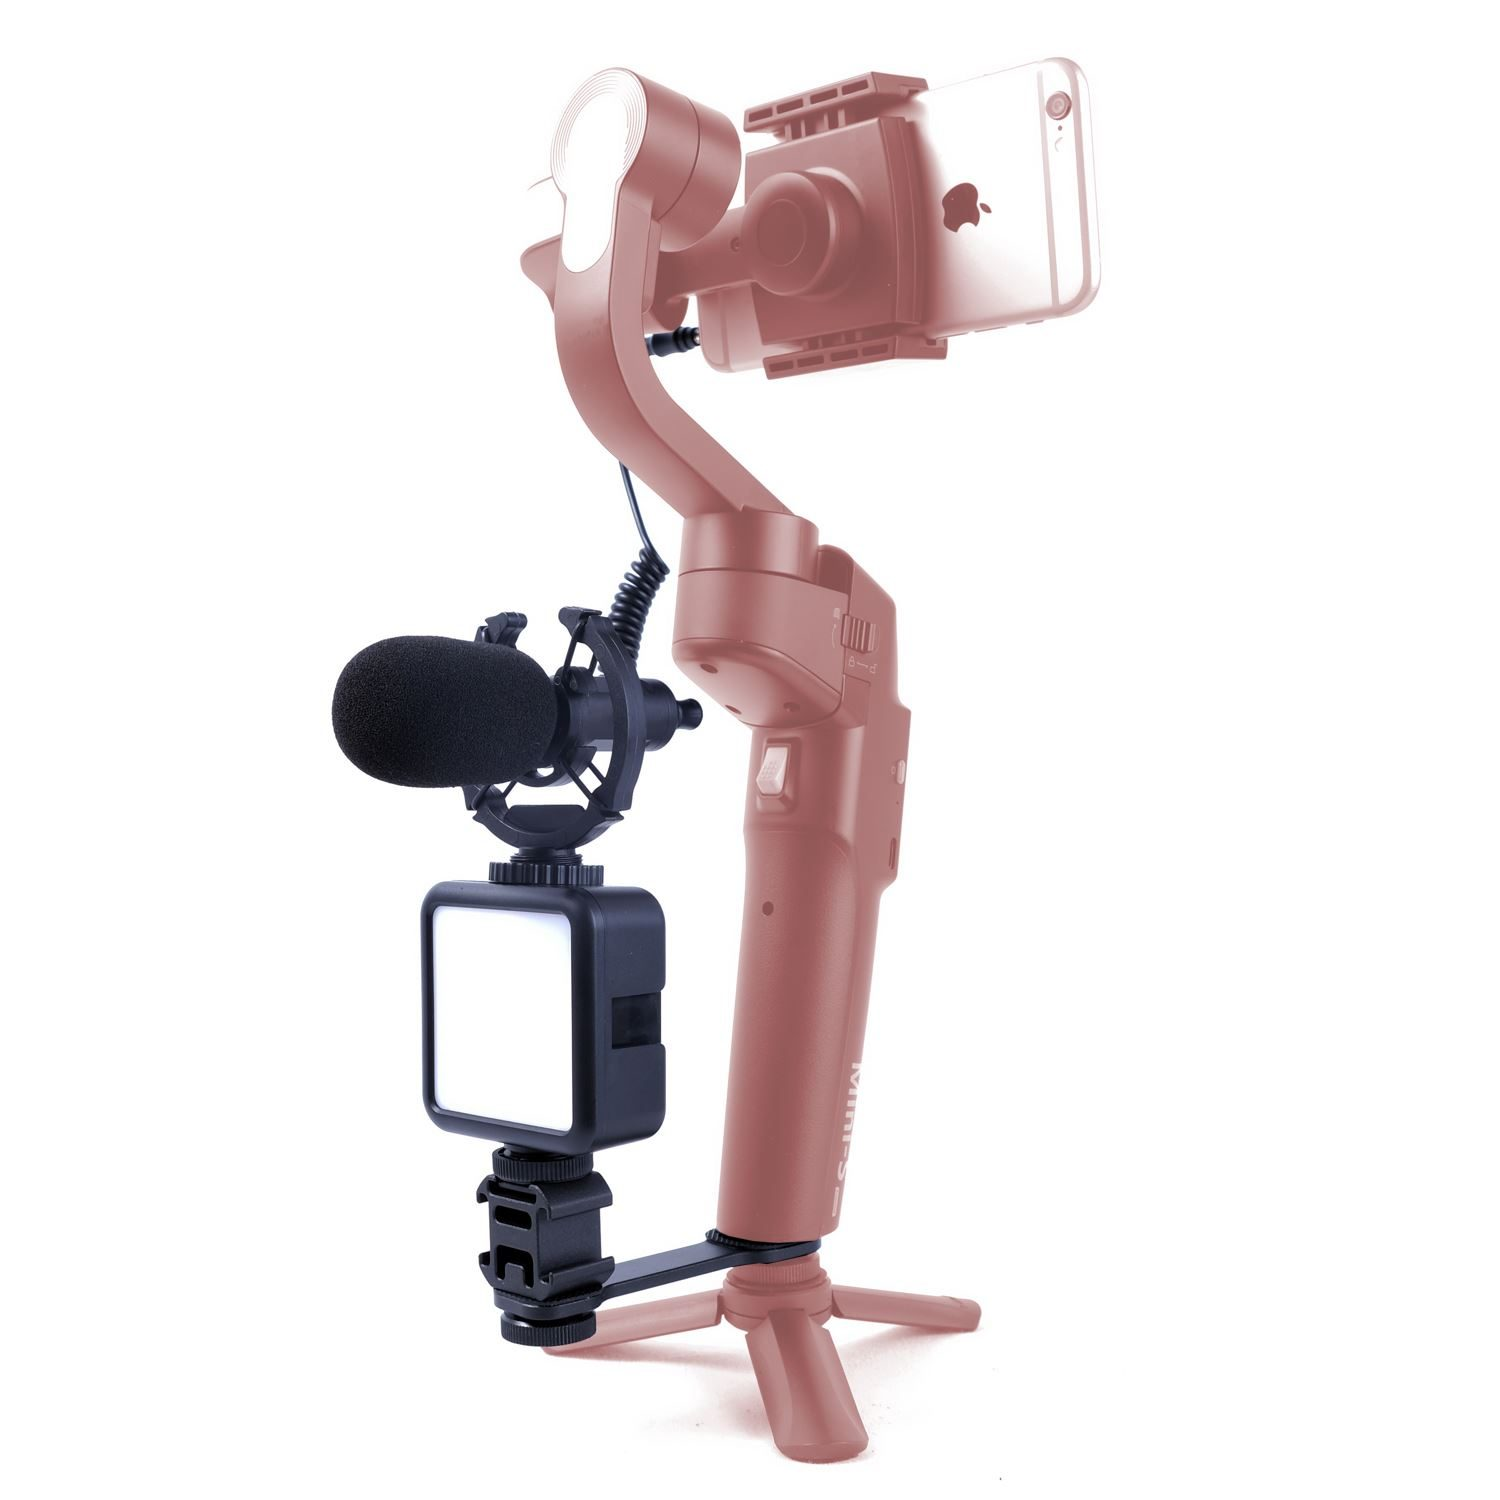 INOV8 Gimbal Vlogging Kit